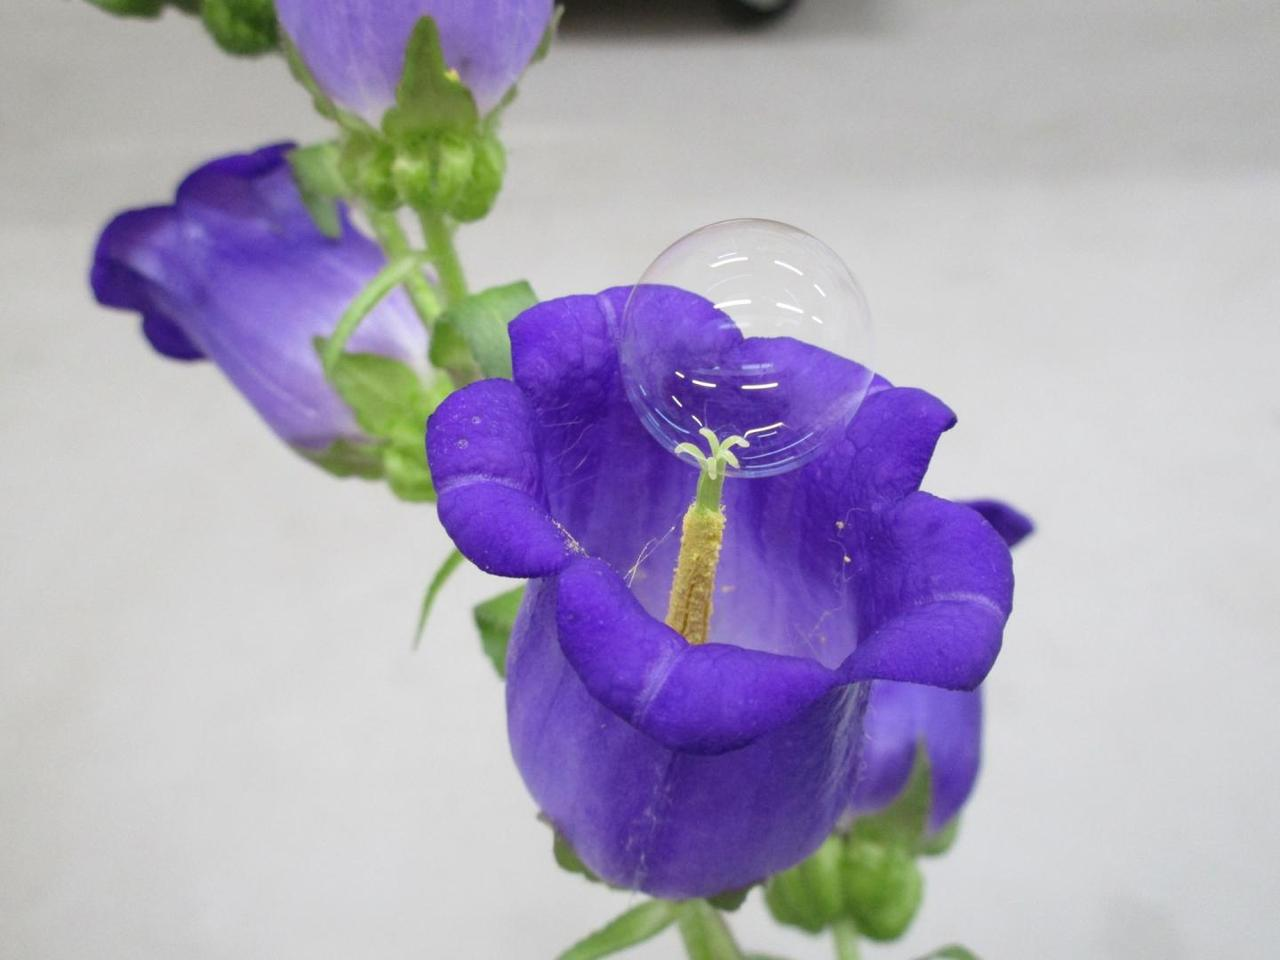 One of the pollen-carrying bubbles, seen here on a campanula flower